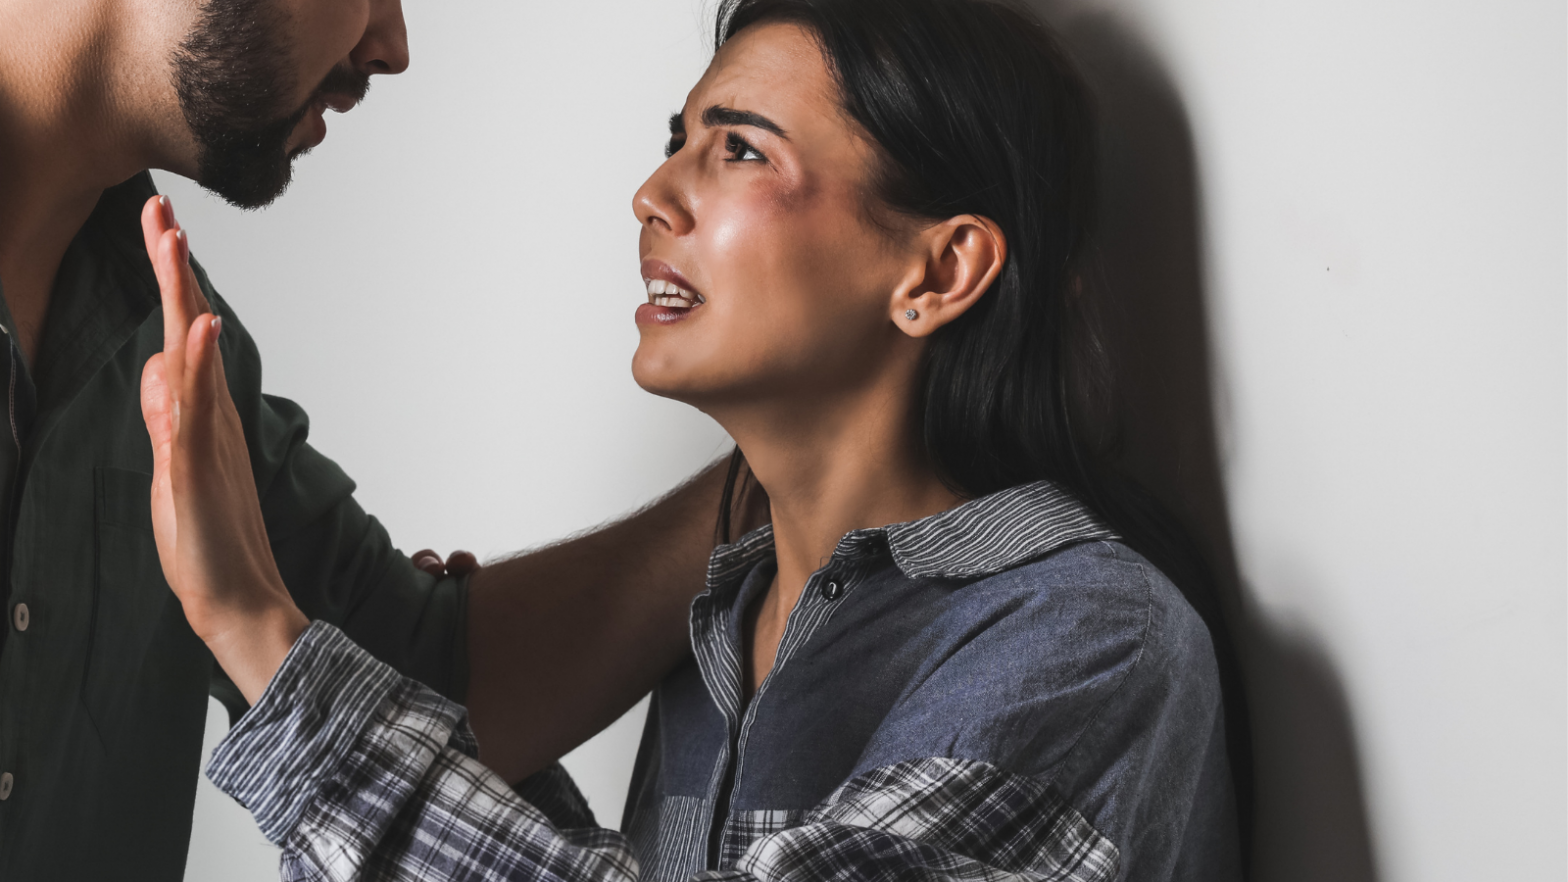 Domestic Violence: The Common Denominator Behind Many Types of Crime